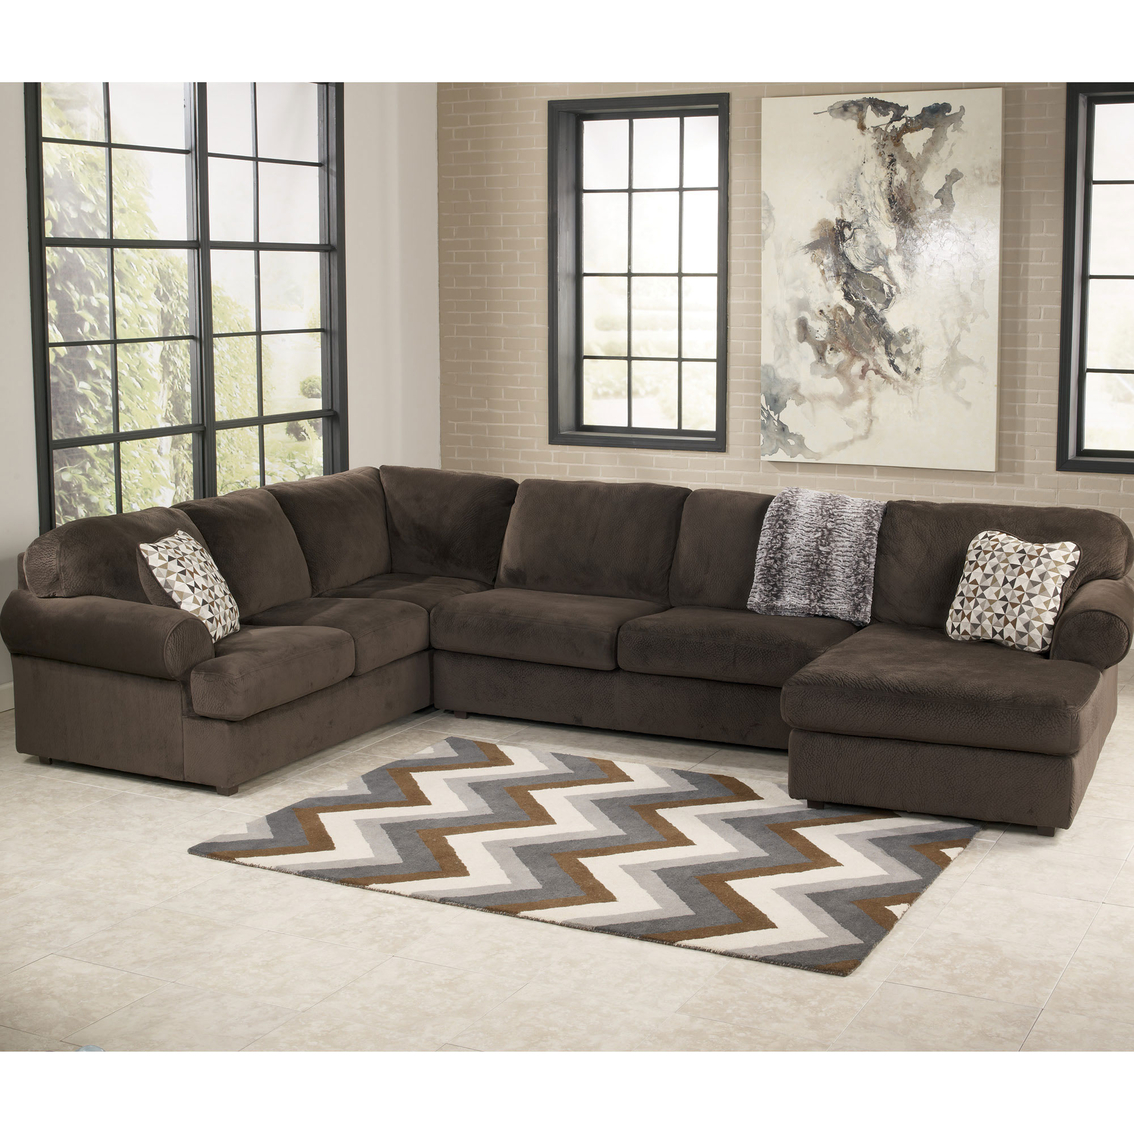 Plush Sofas Customer Service Signature Design By Ashley Jessa Place 3 Pc. Sectional